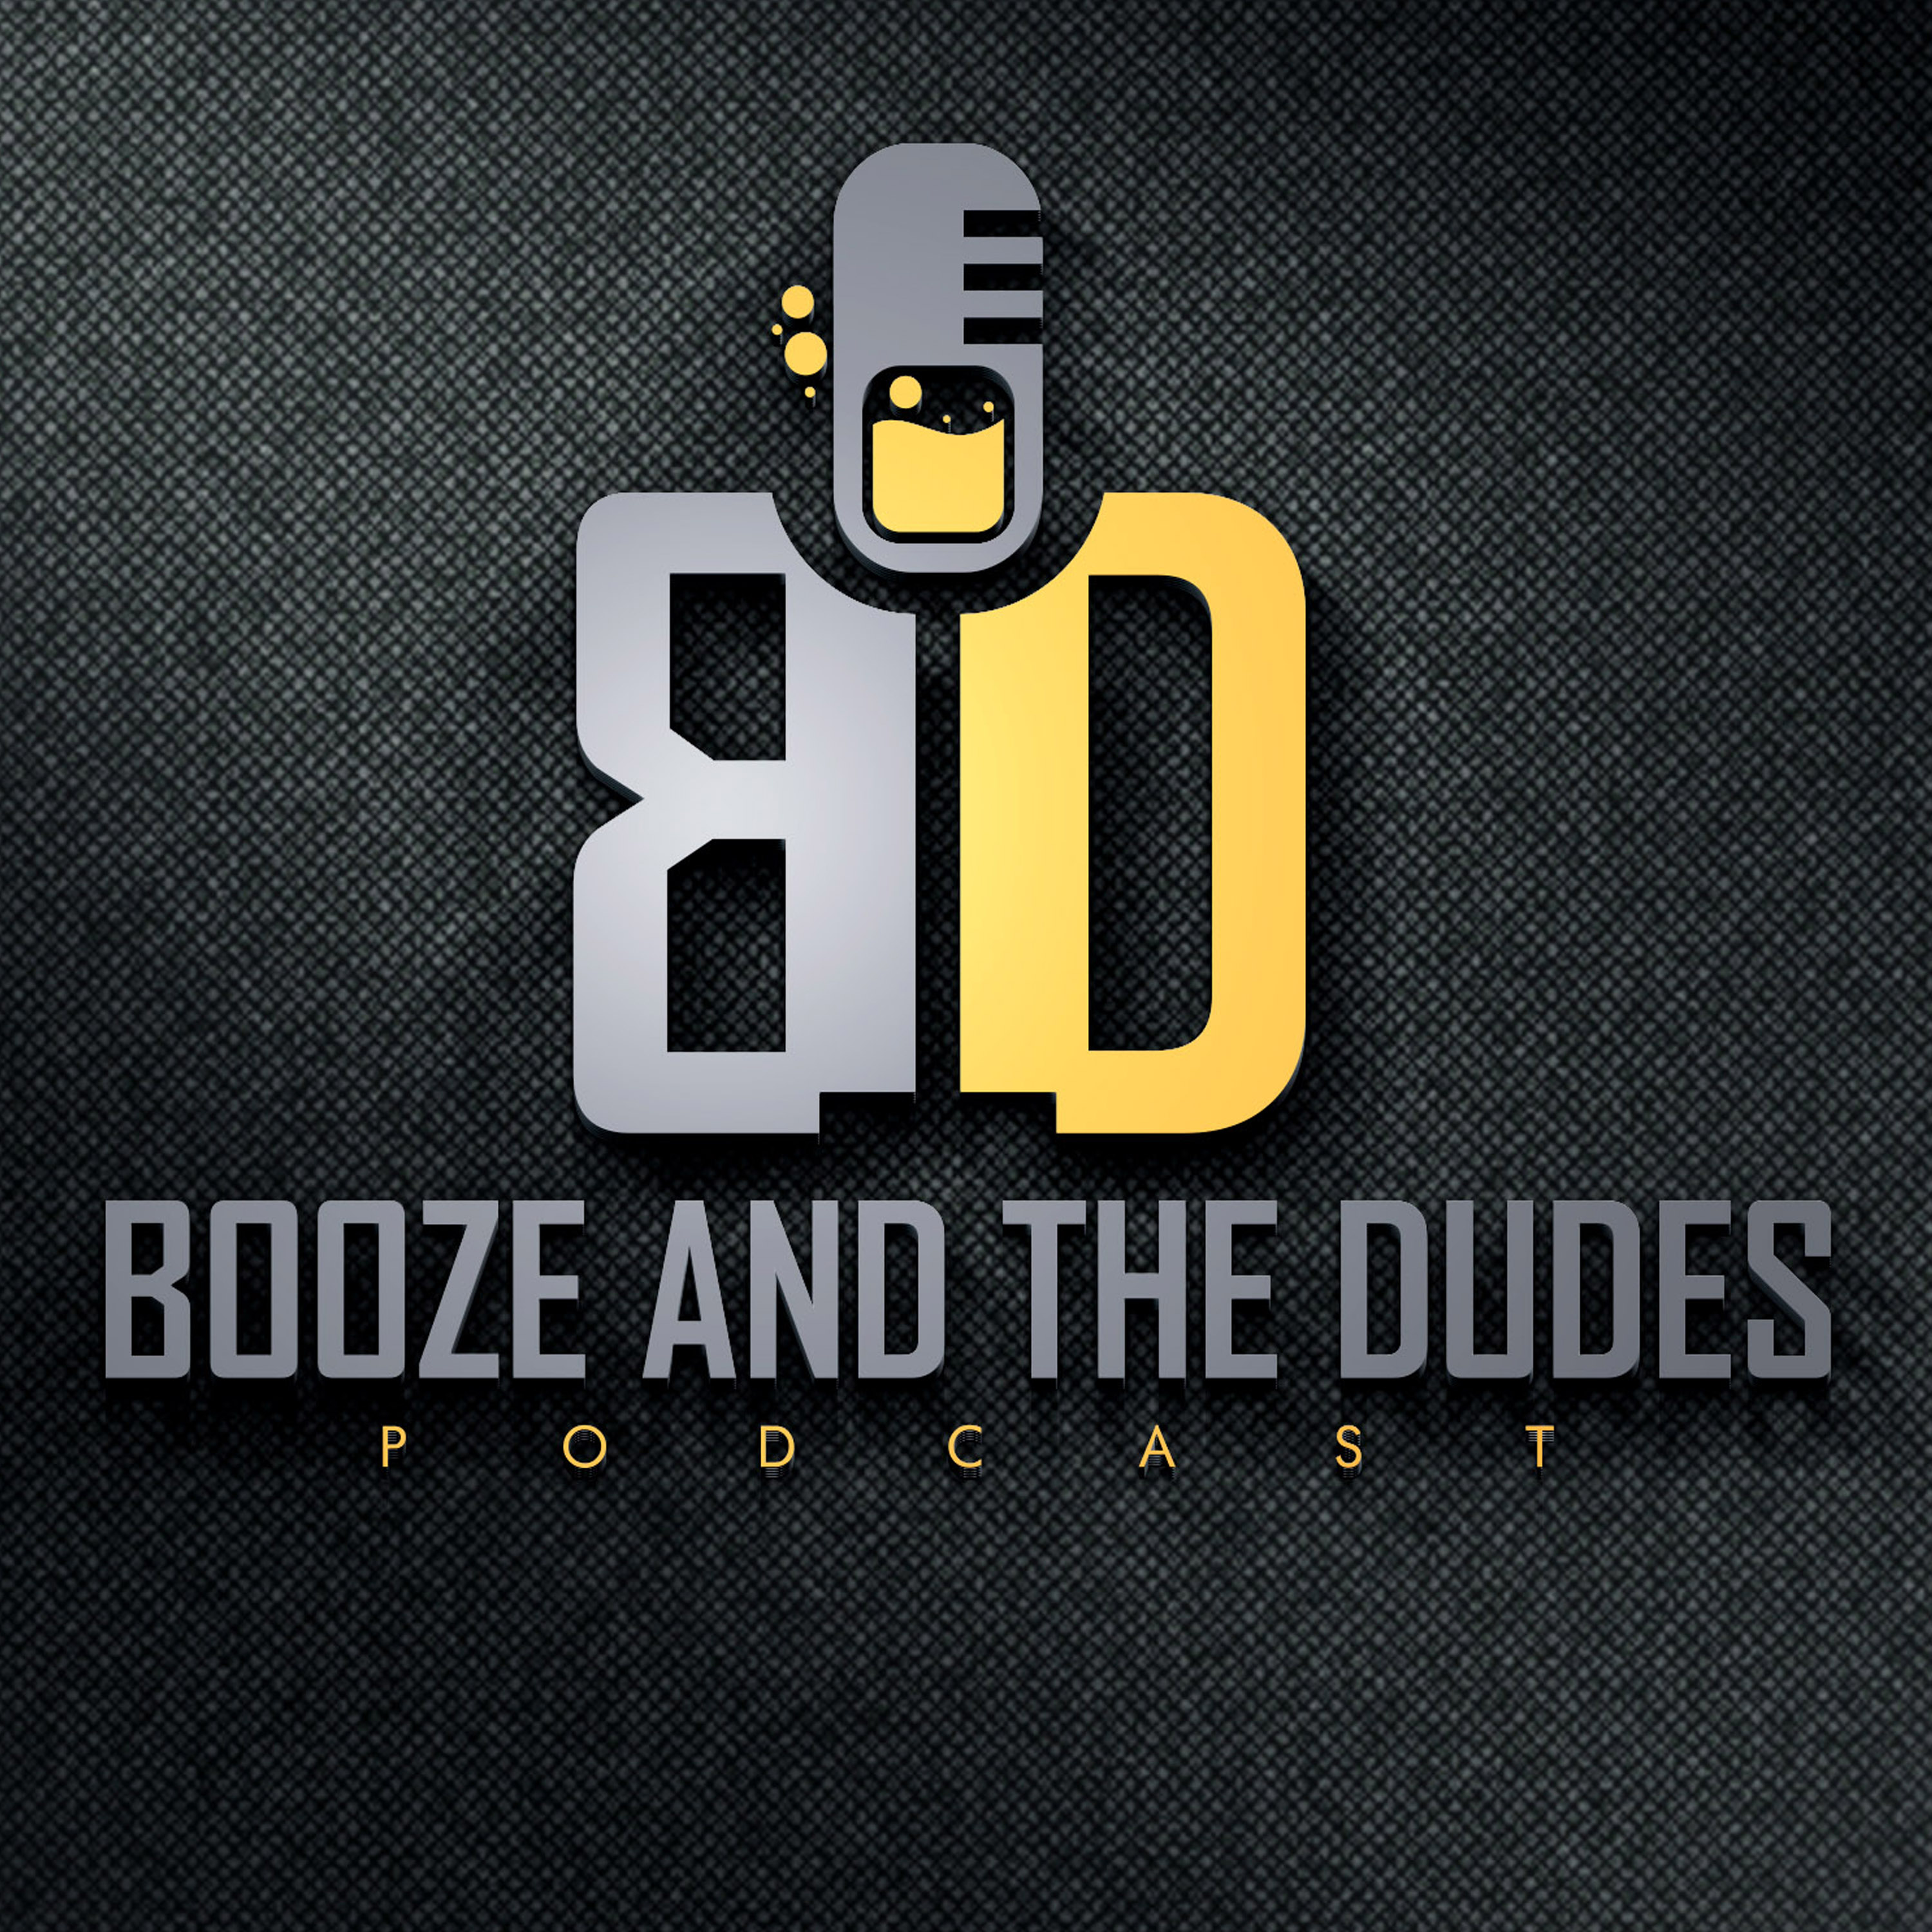 Booze and the Dudes